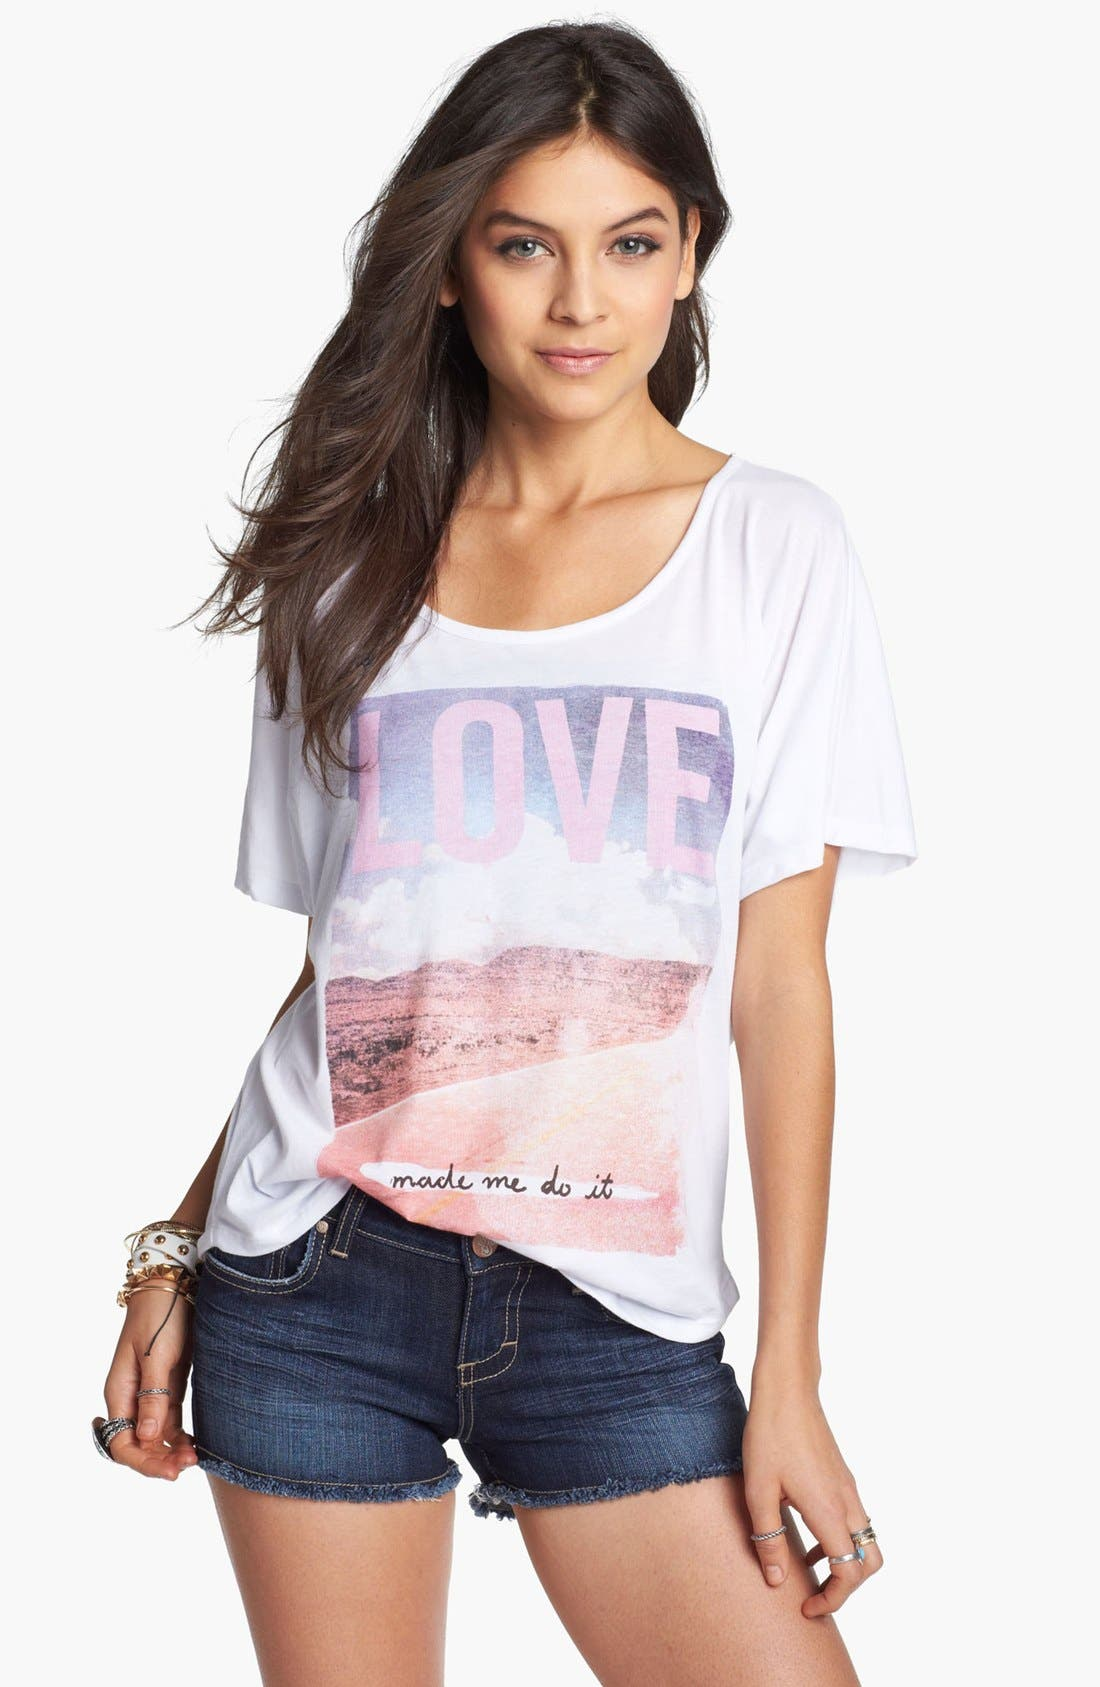 Alternate Image 1 Selected - Malibu Native 'Love Made Me Do It' Tee (Juniors)